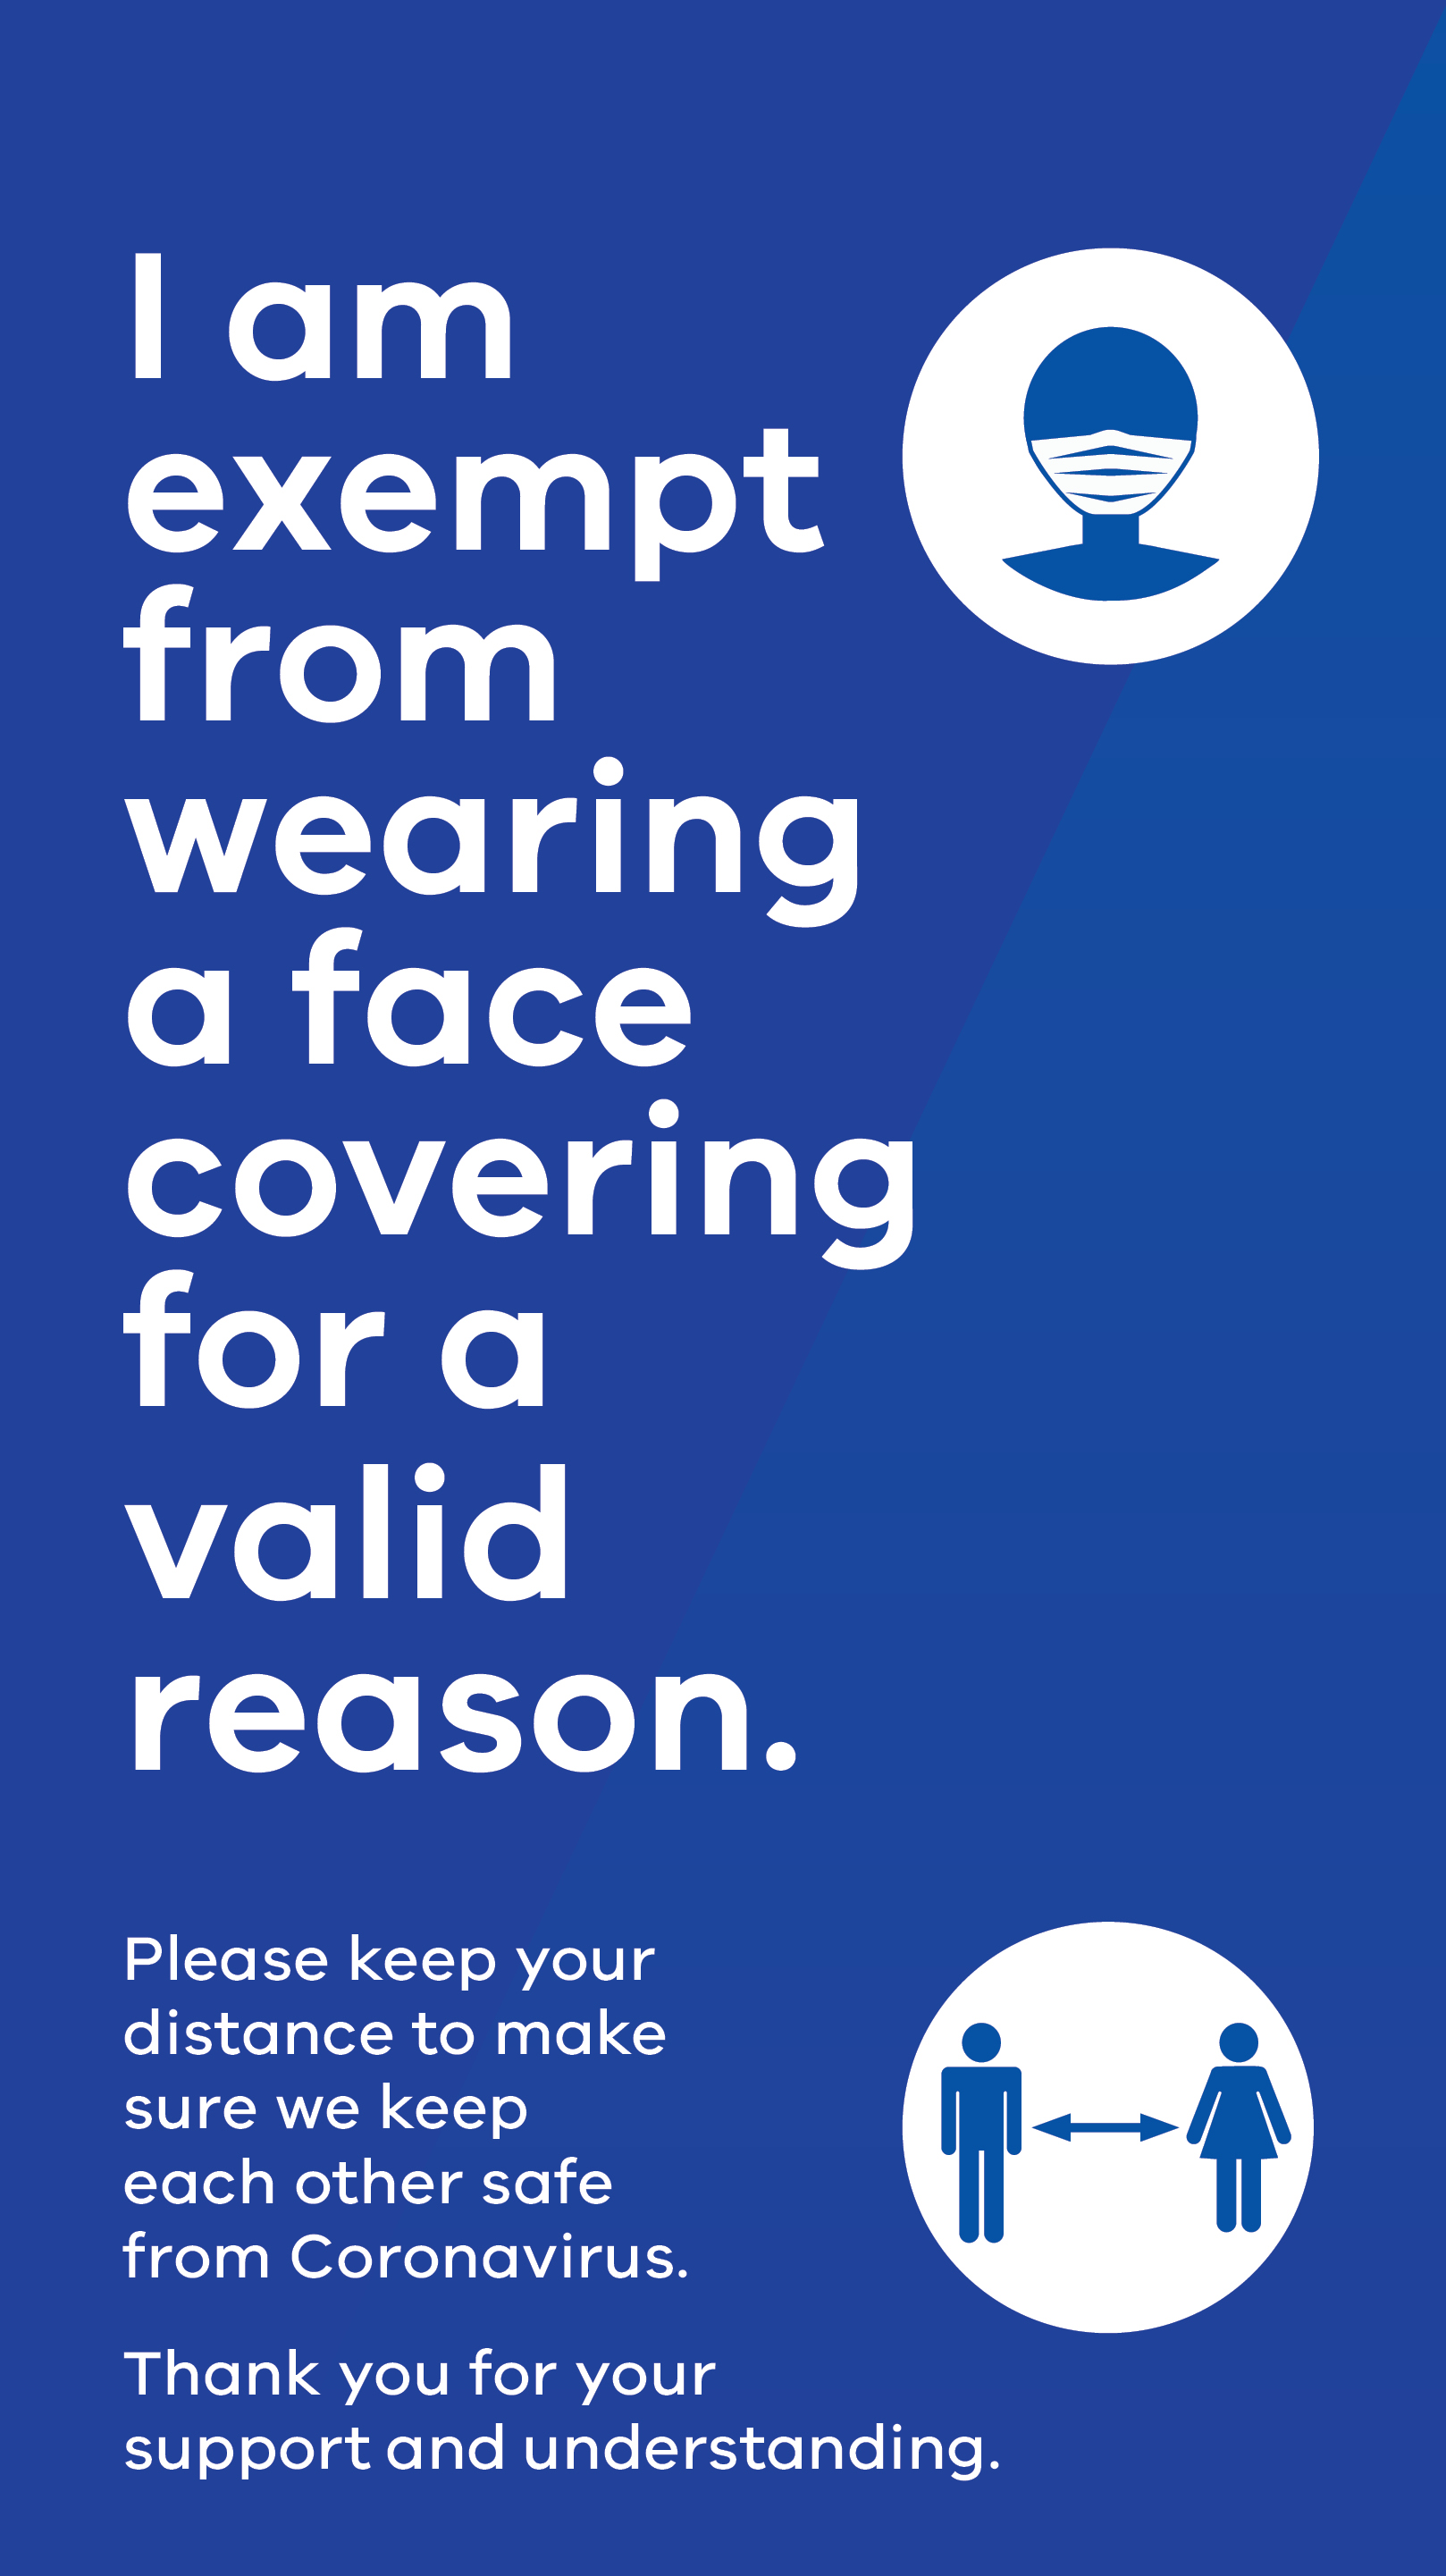 I am exempt from wearing a face covering for a valid reason. Please keep your distance to make sure we keep each other safe from Coronavirus. Thank you for your support and understanding.